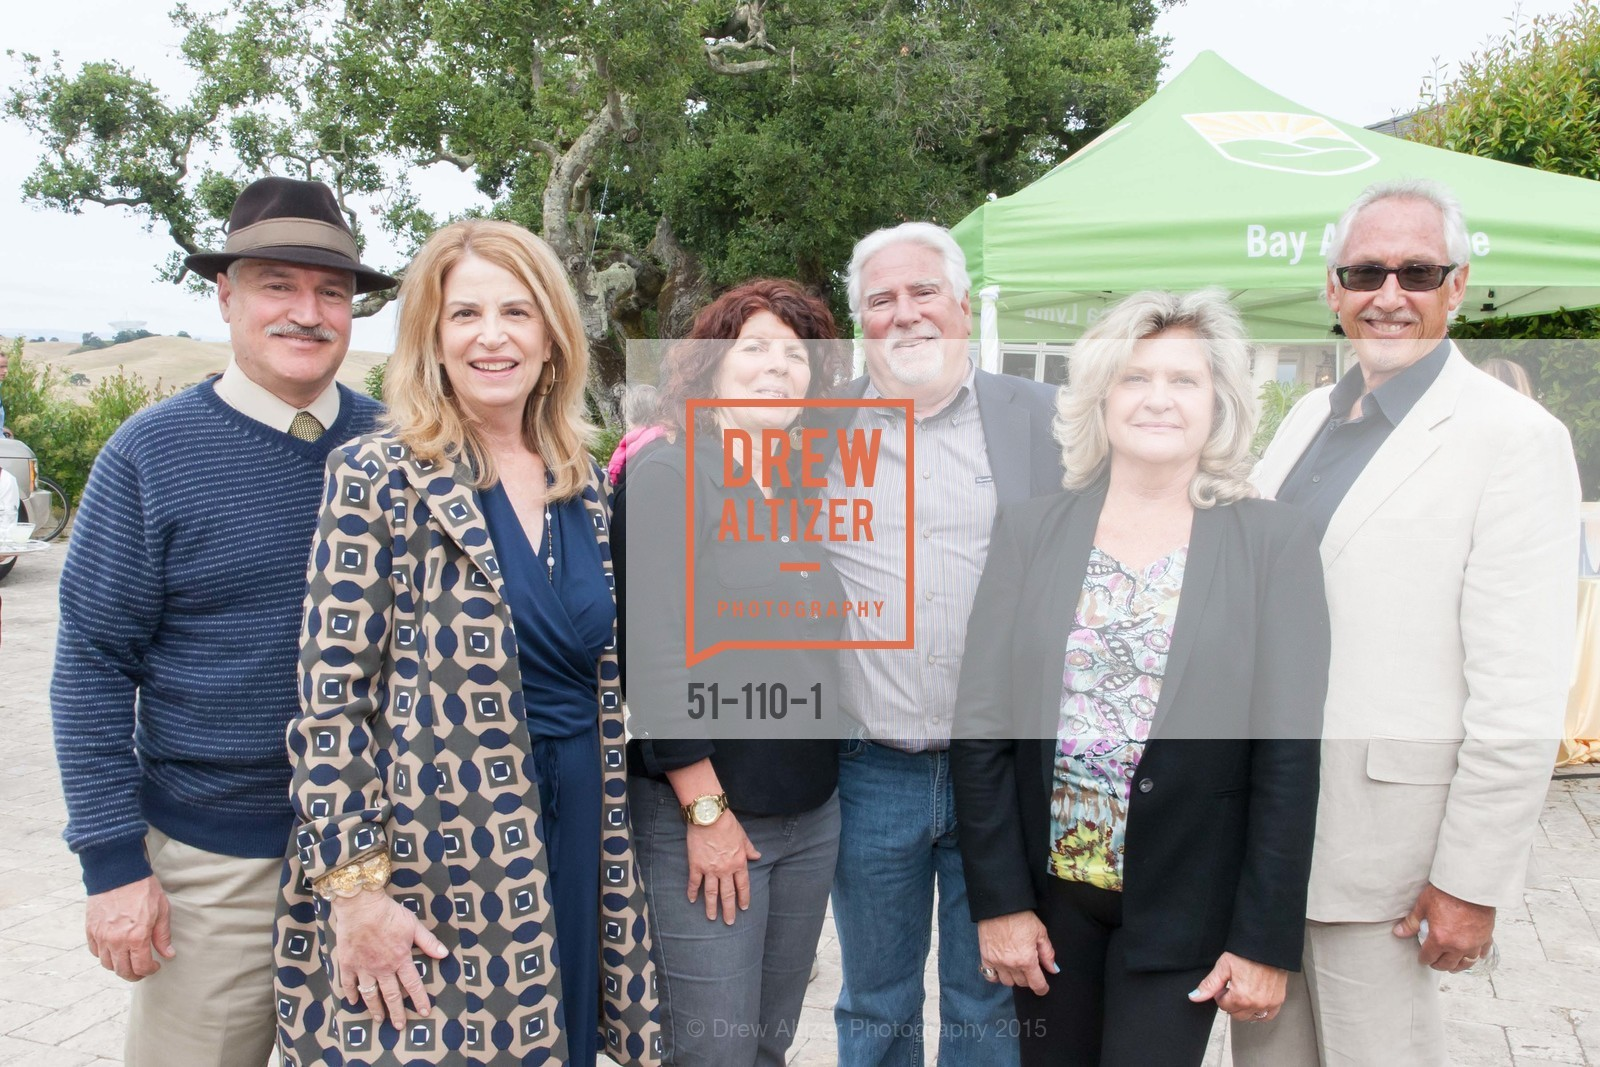 Extras, LYME AID 2015 Benefiting the Bay Area Lyme Foundation, May 16th, 2015, Photo